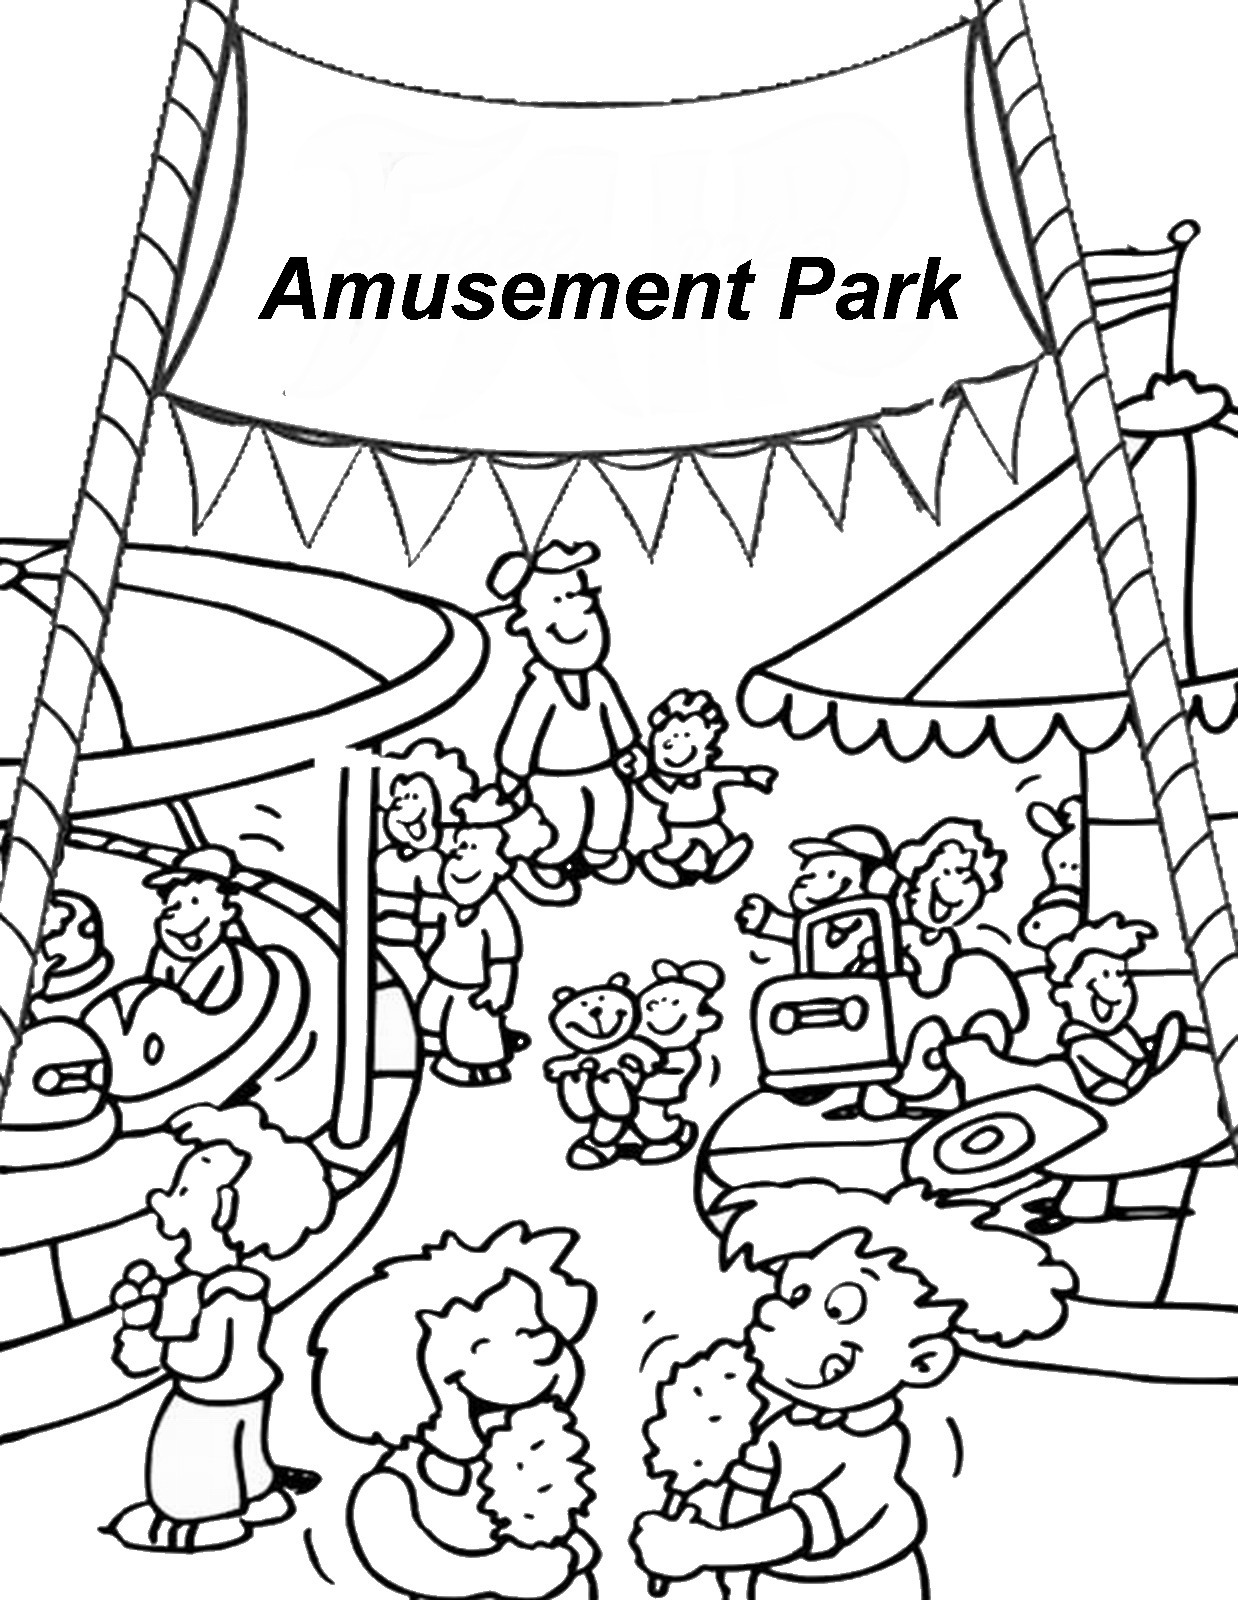 County Fair Coloring Pages